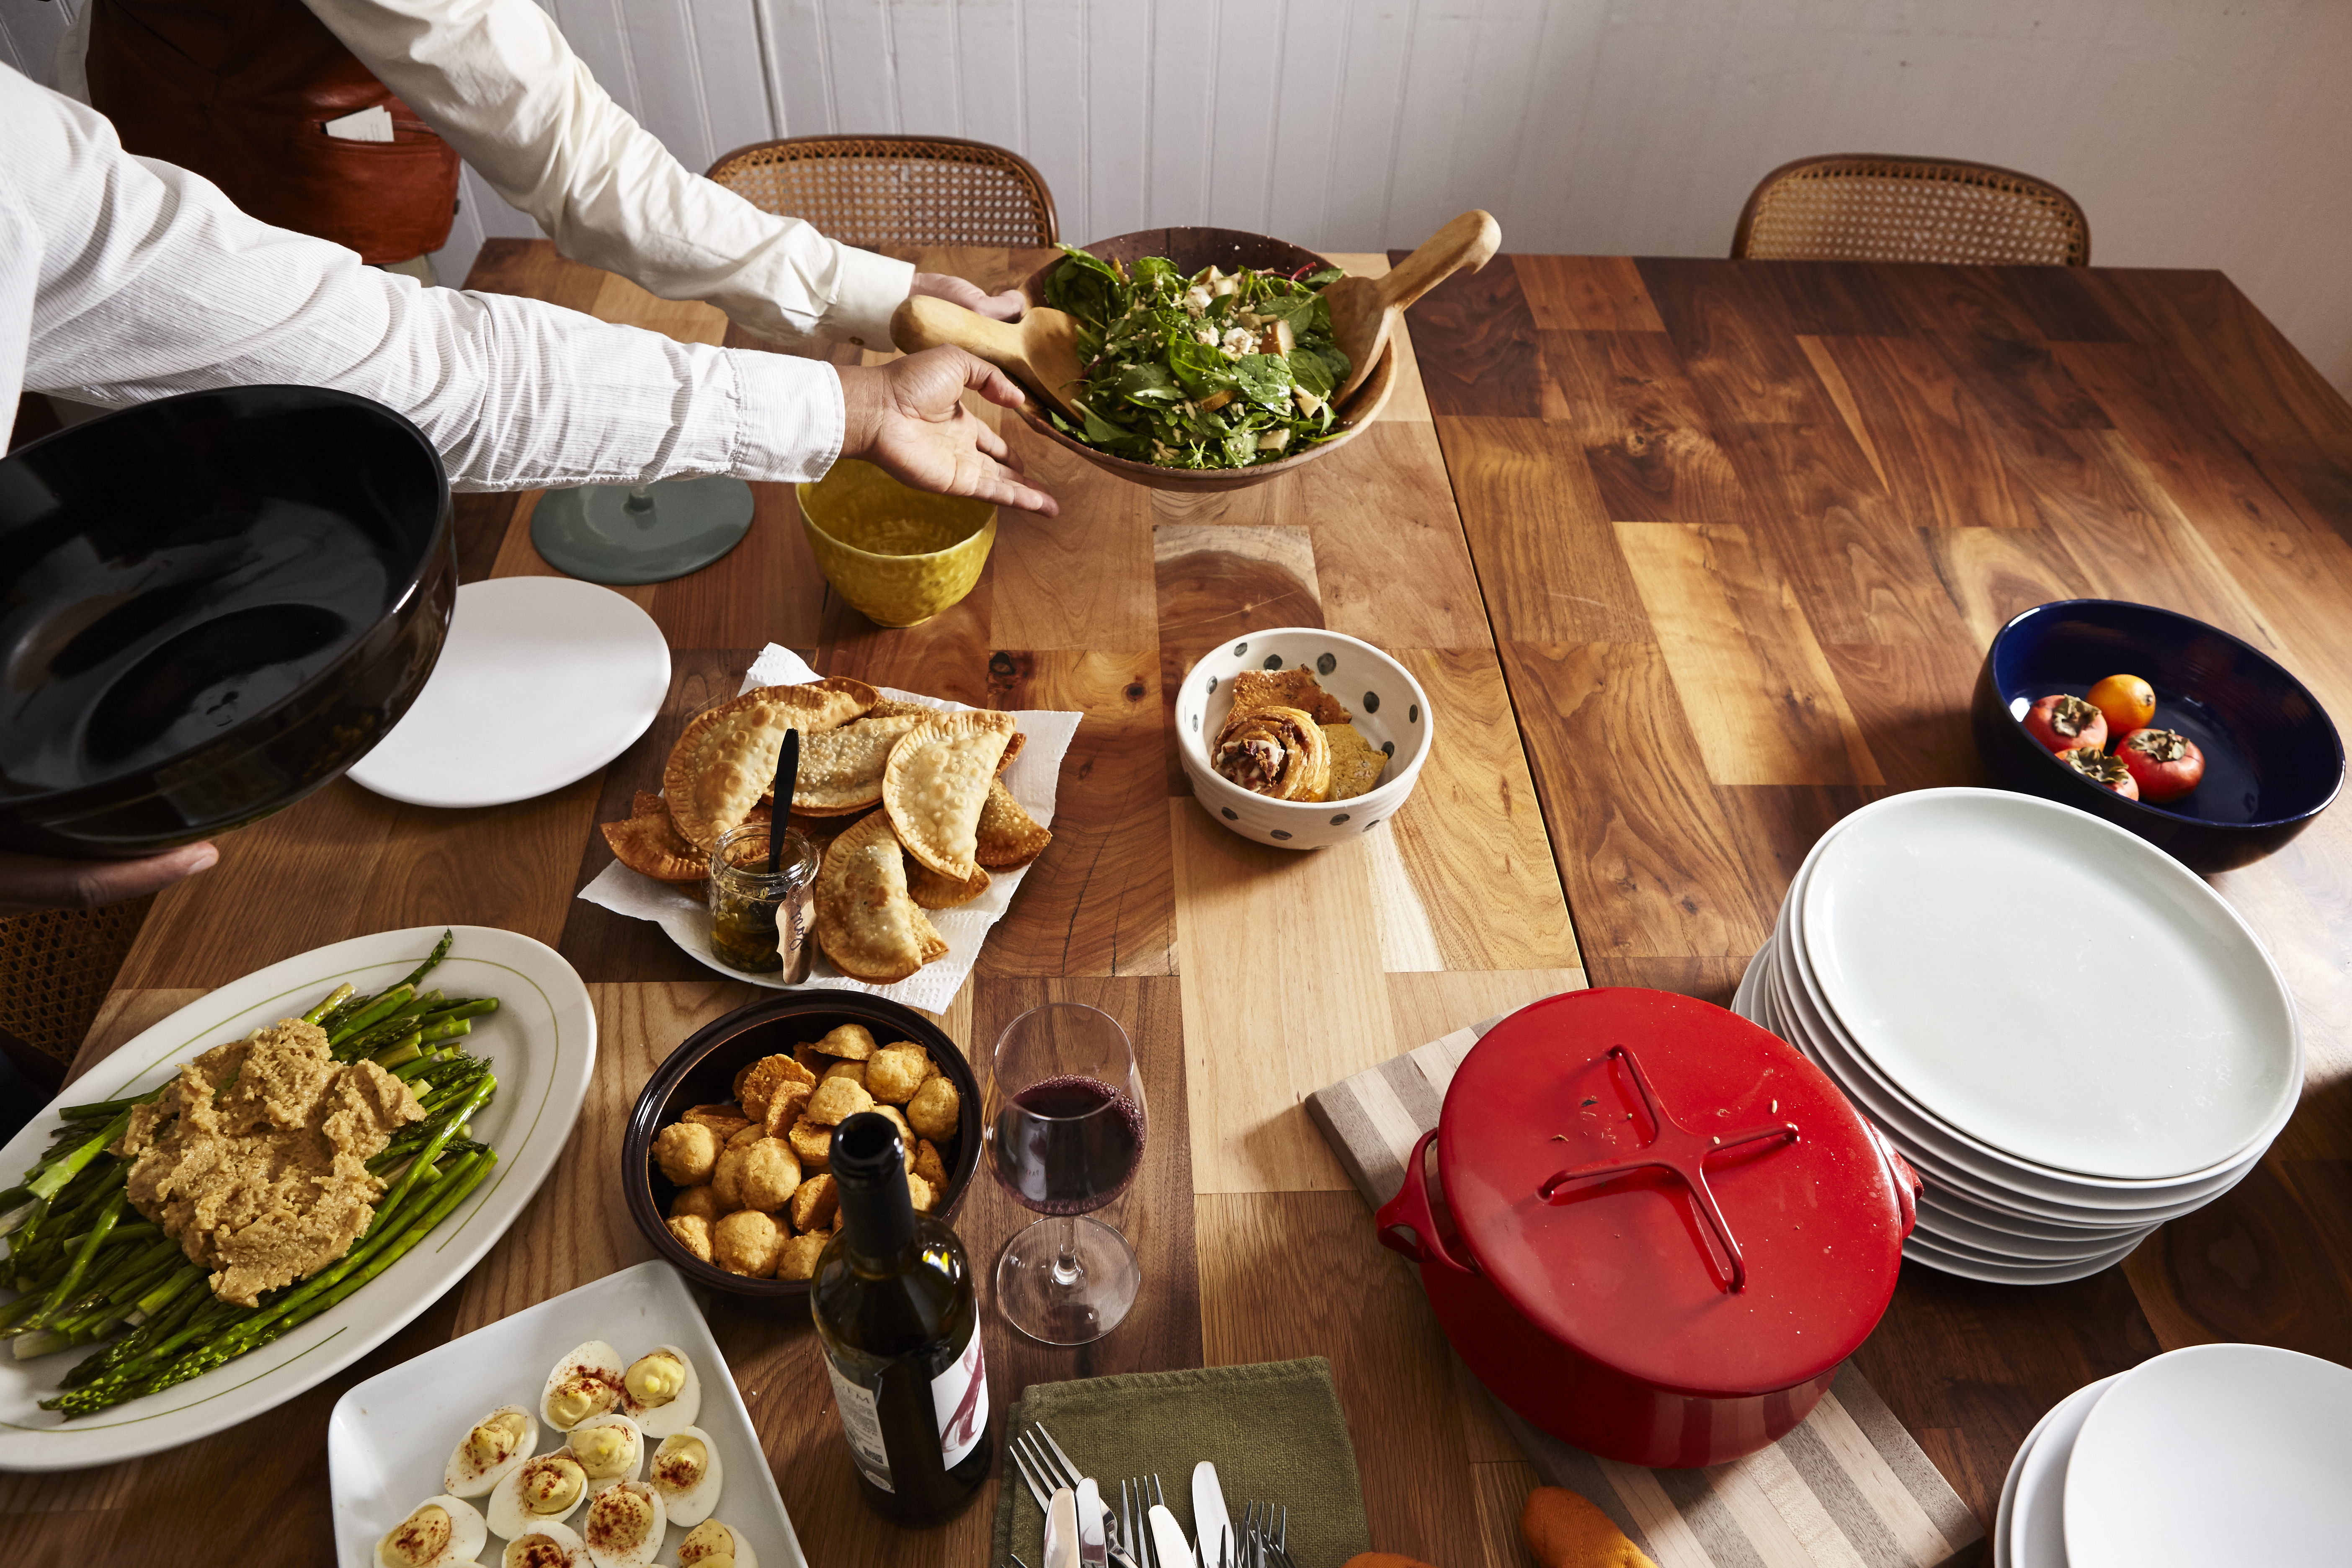 A table of food at a dinner party.